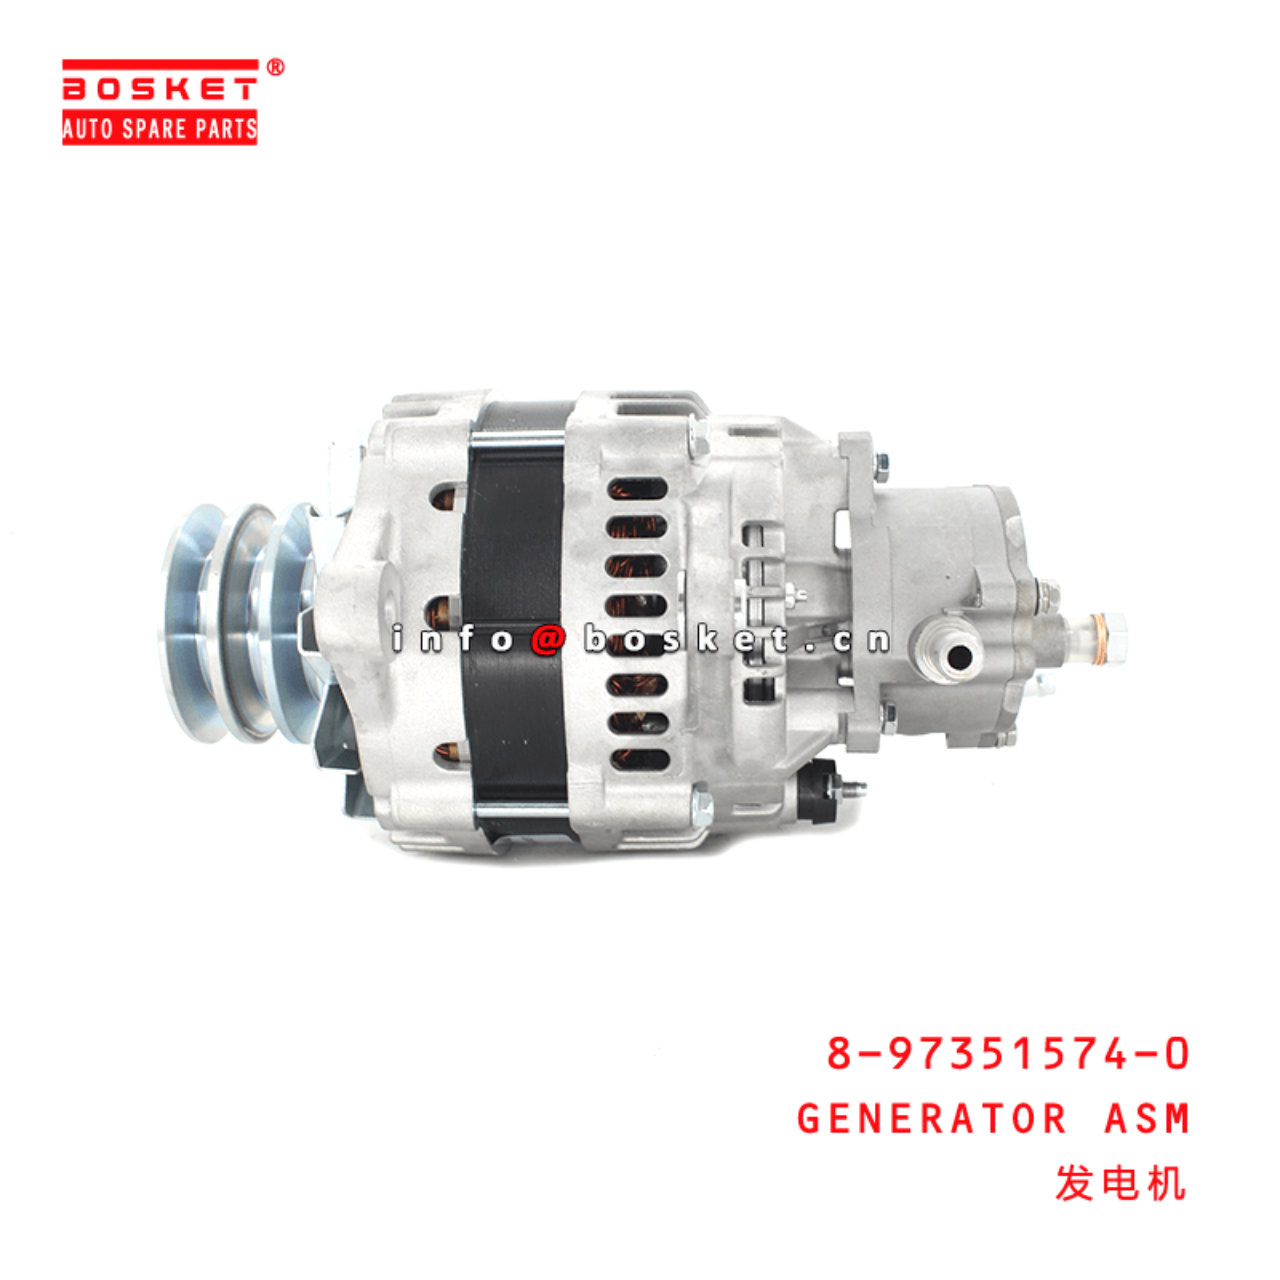 8-97351574-0 Generator Assembly 8973515740 Suitable for ISUZU NKR 4HK1T 4HE1